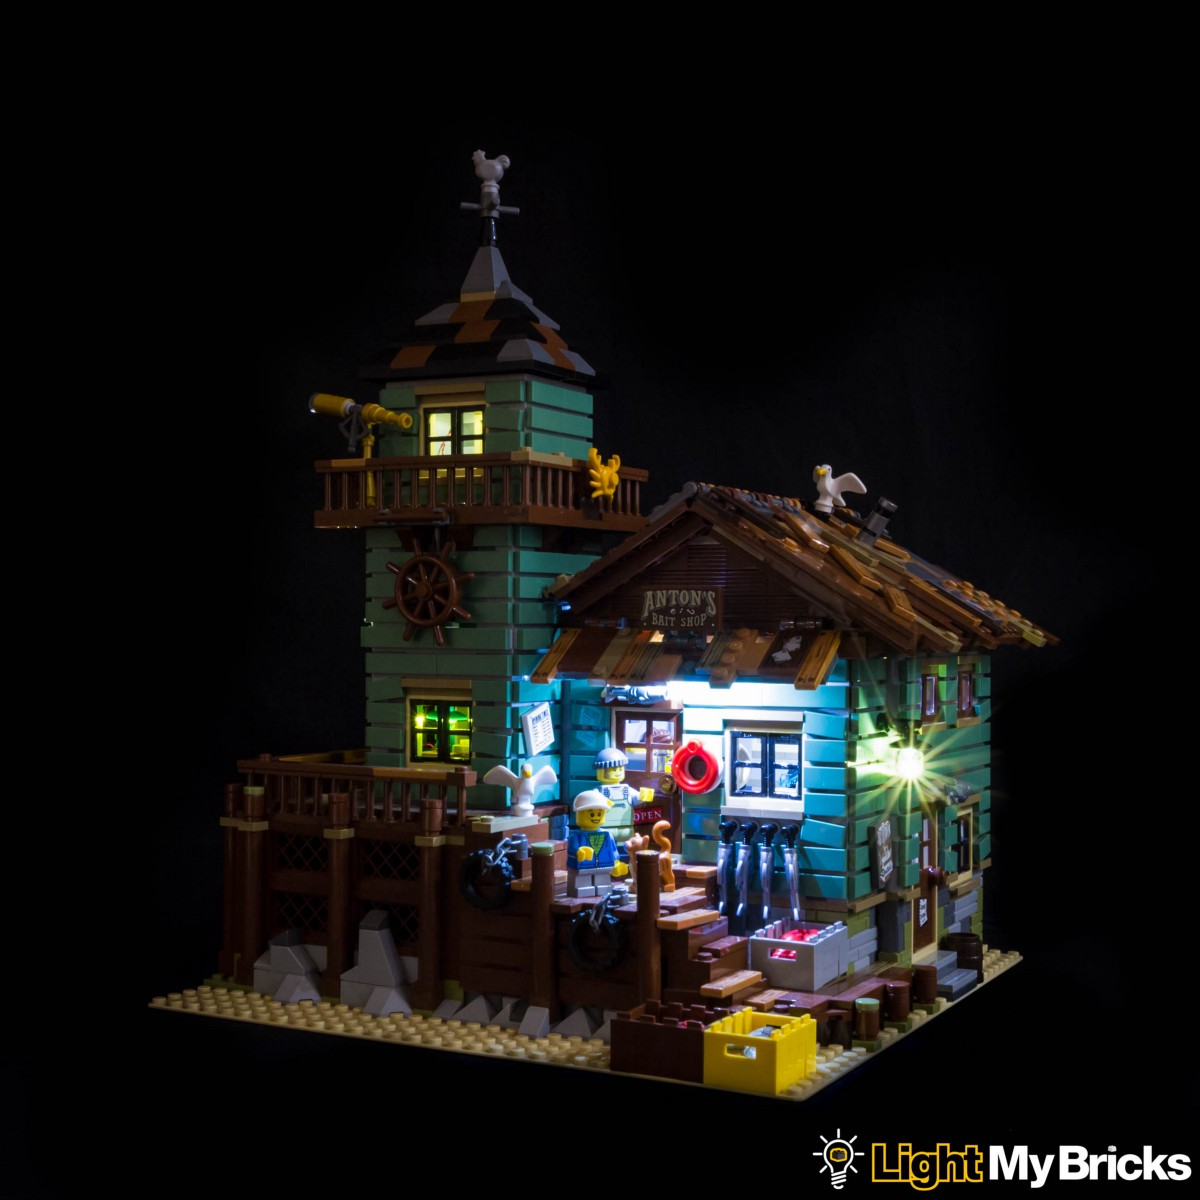 lego lighting. This Finally Completes Installation Of The Old Fishing Store Light Kit. Now Turn \u0027ON\u0027 Your Kit And ENJOY! Lego Lighting